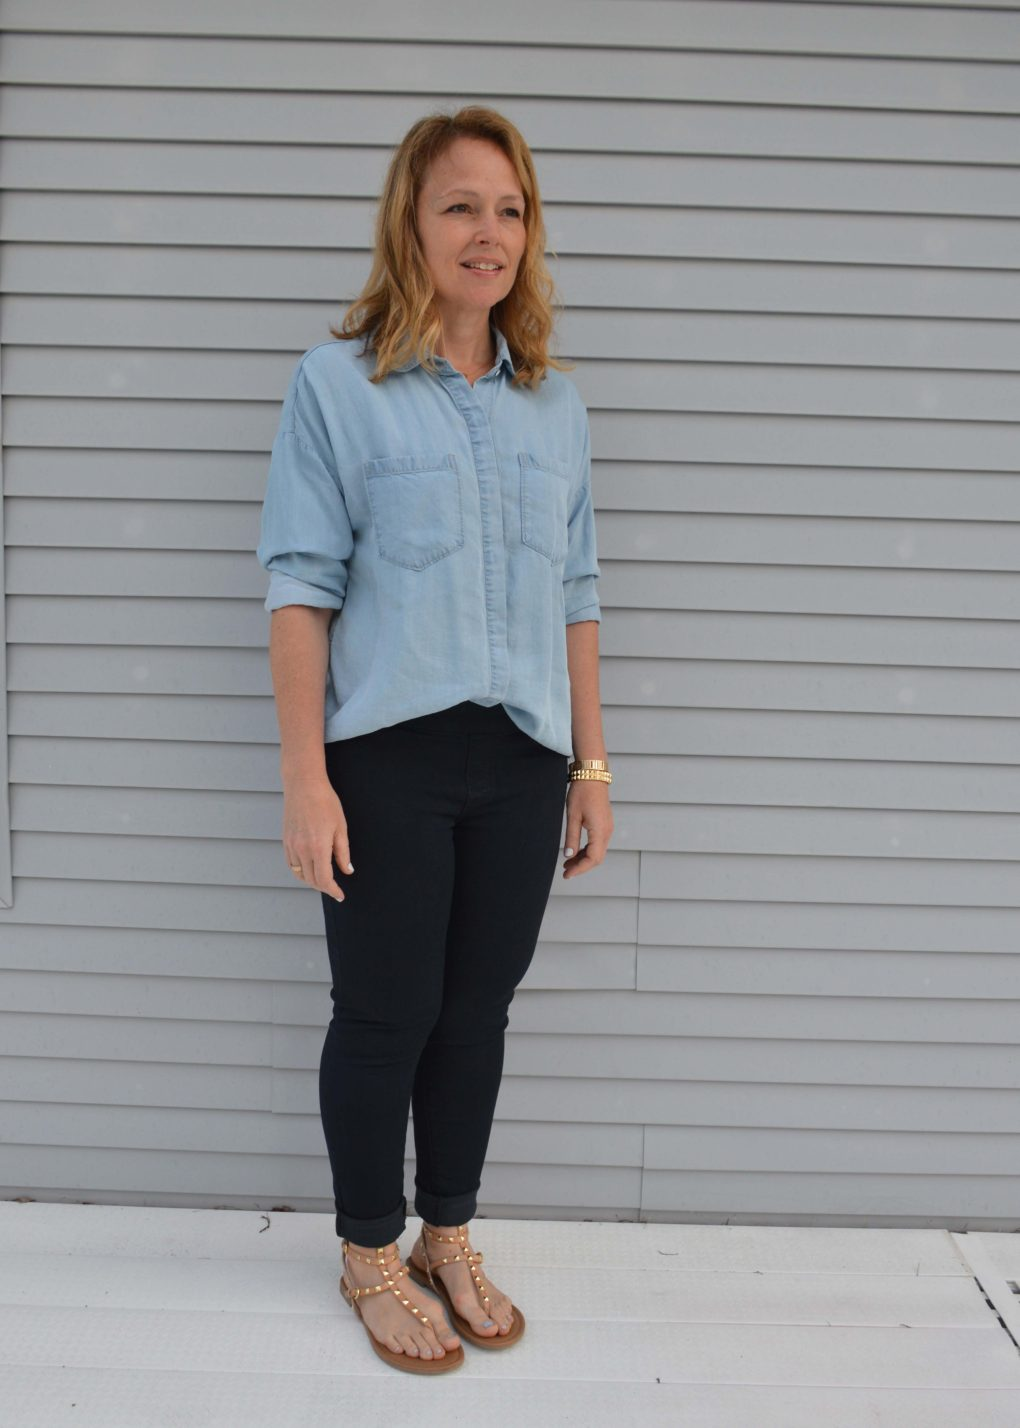 Lighter chambray with black jeans and studded sandals